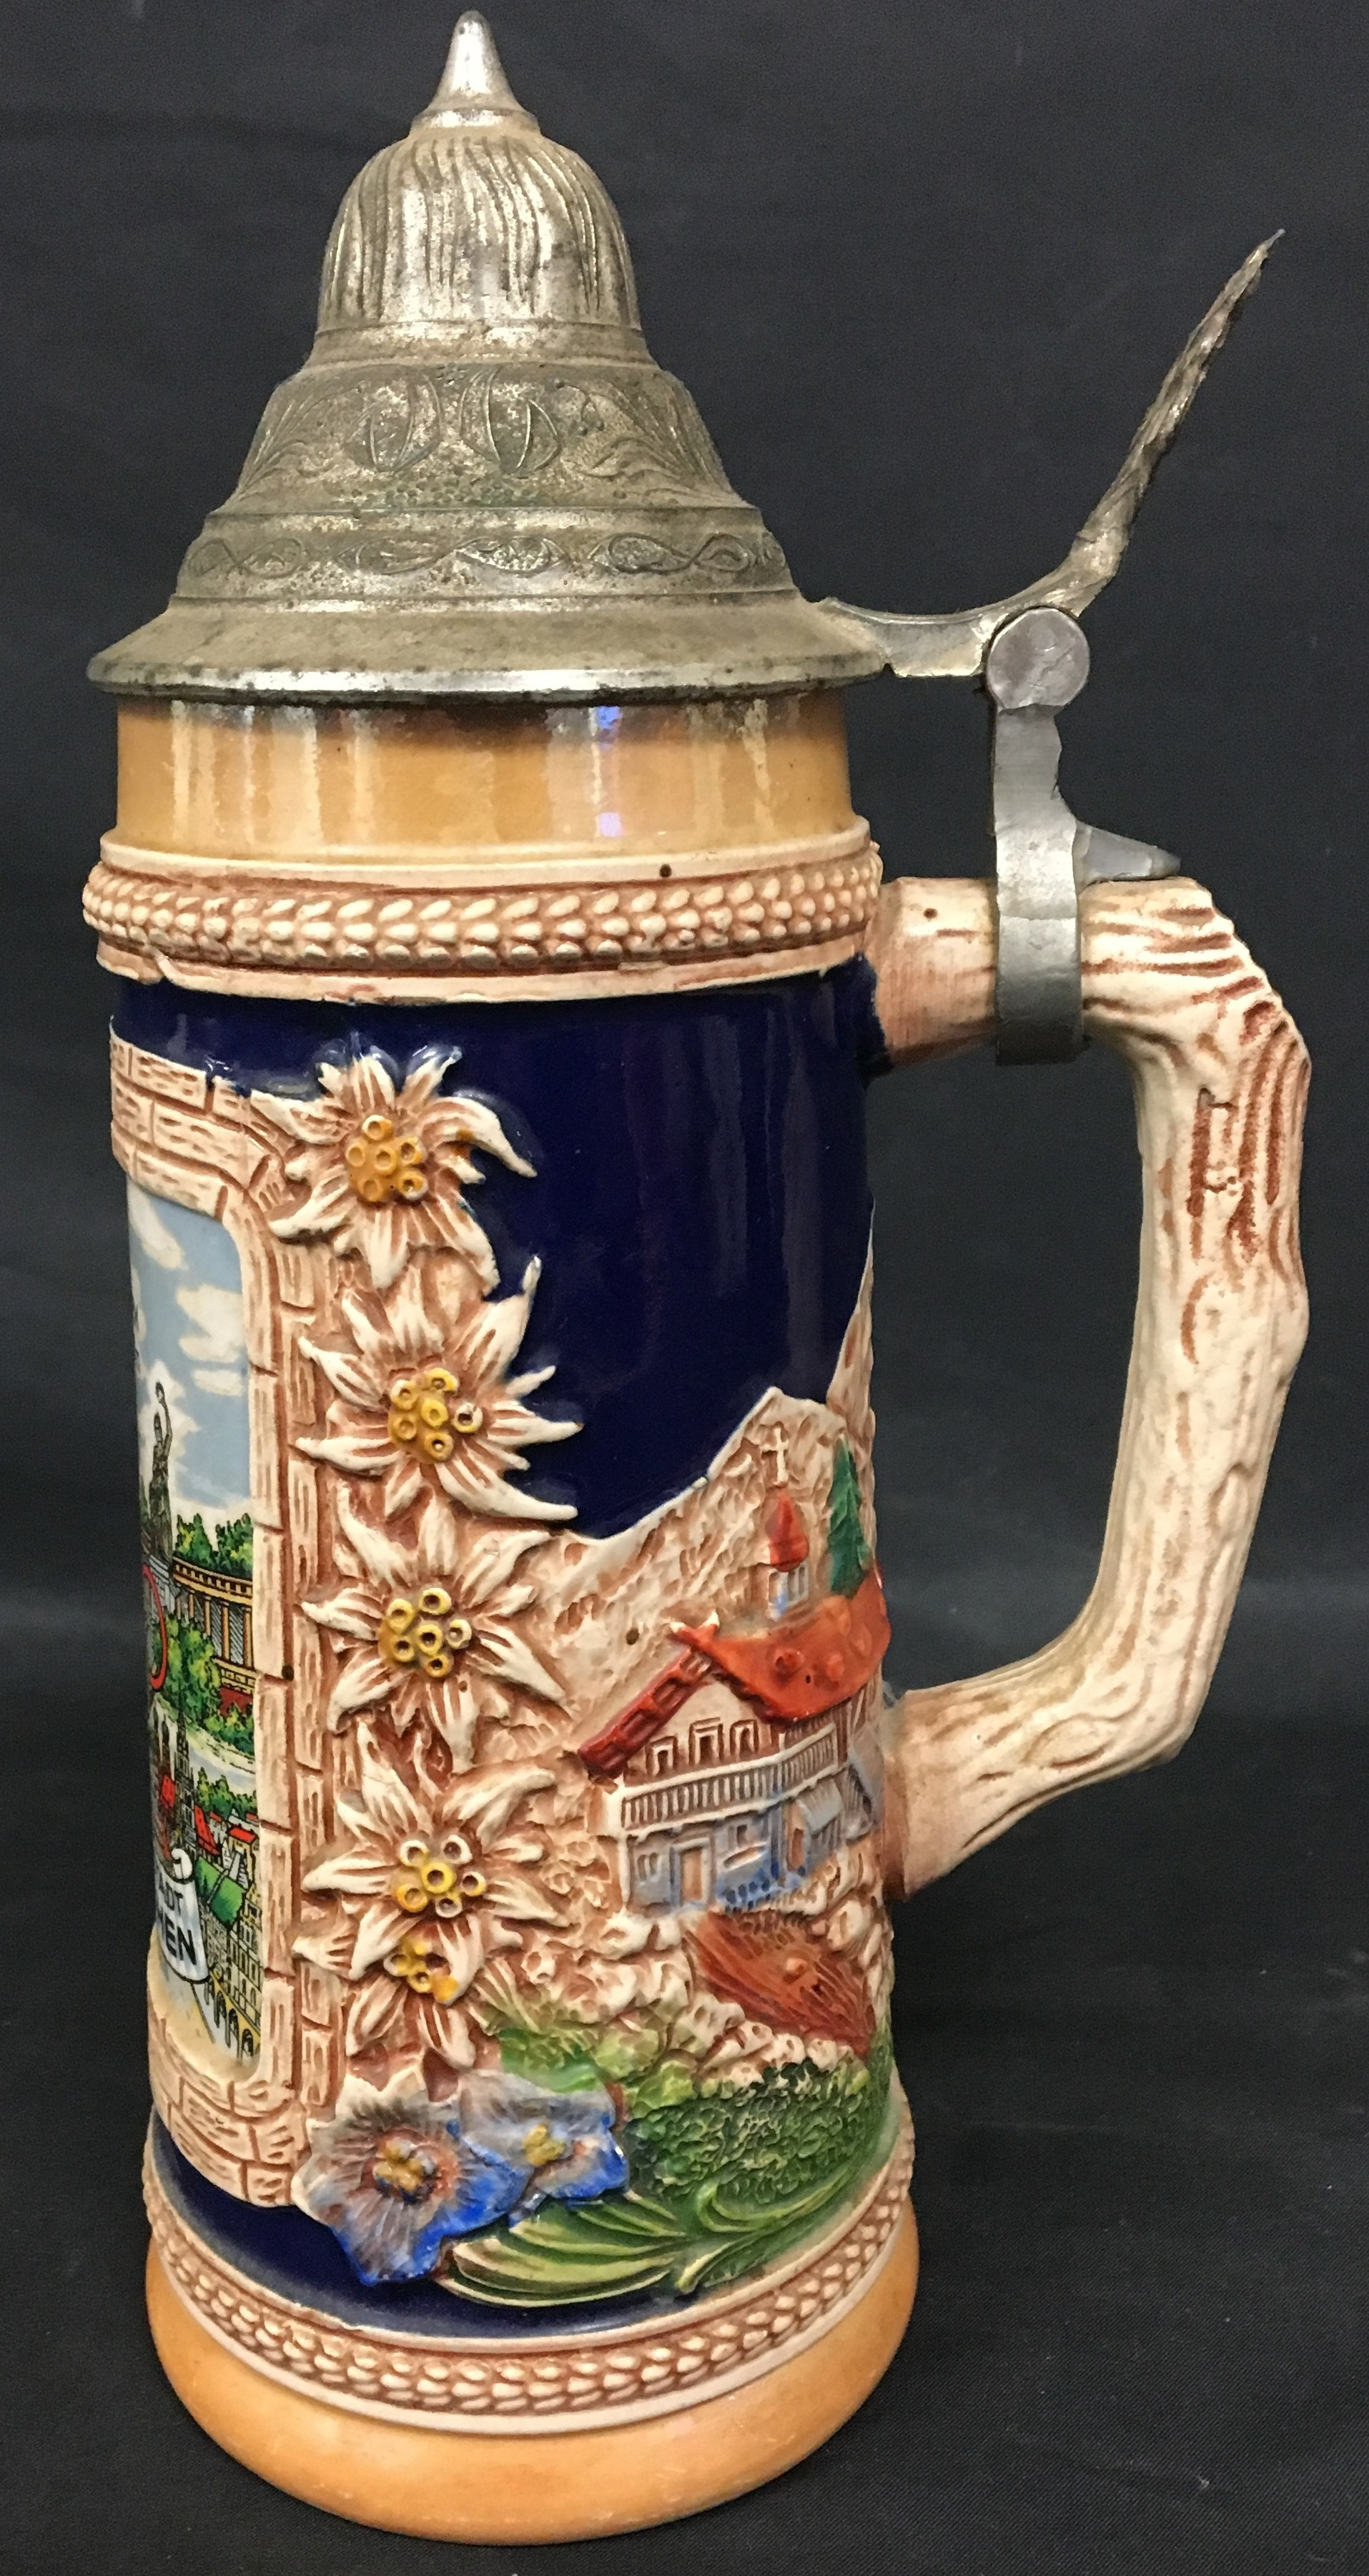 COLLECTIBLES: 1972 GERMAN OLYMPICS STEIN